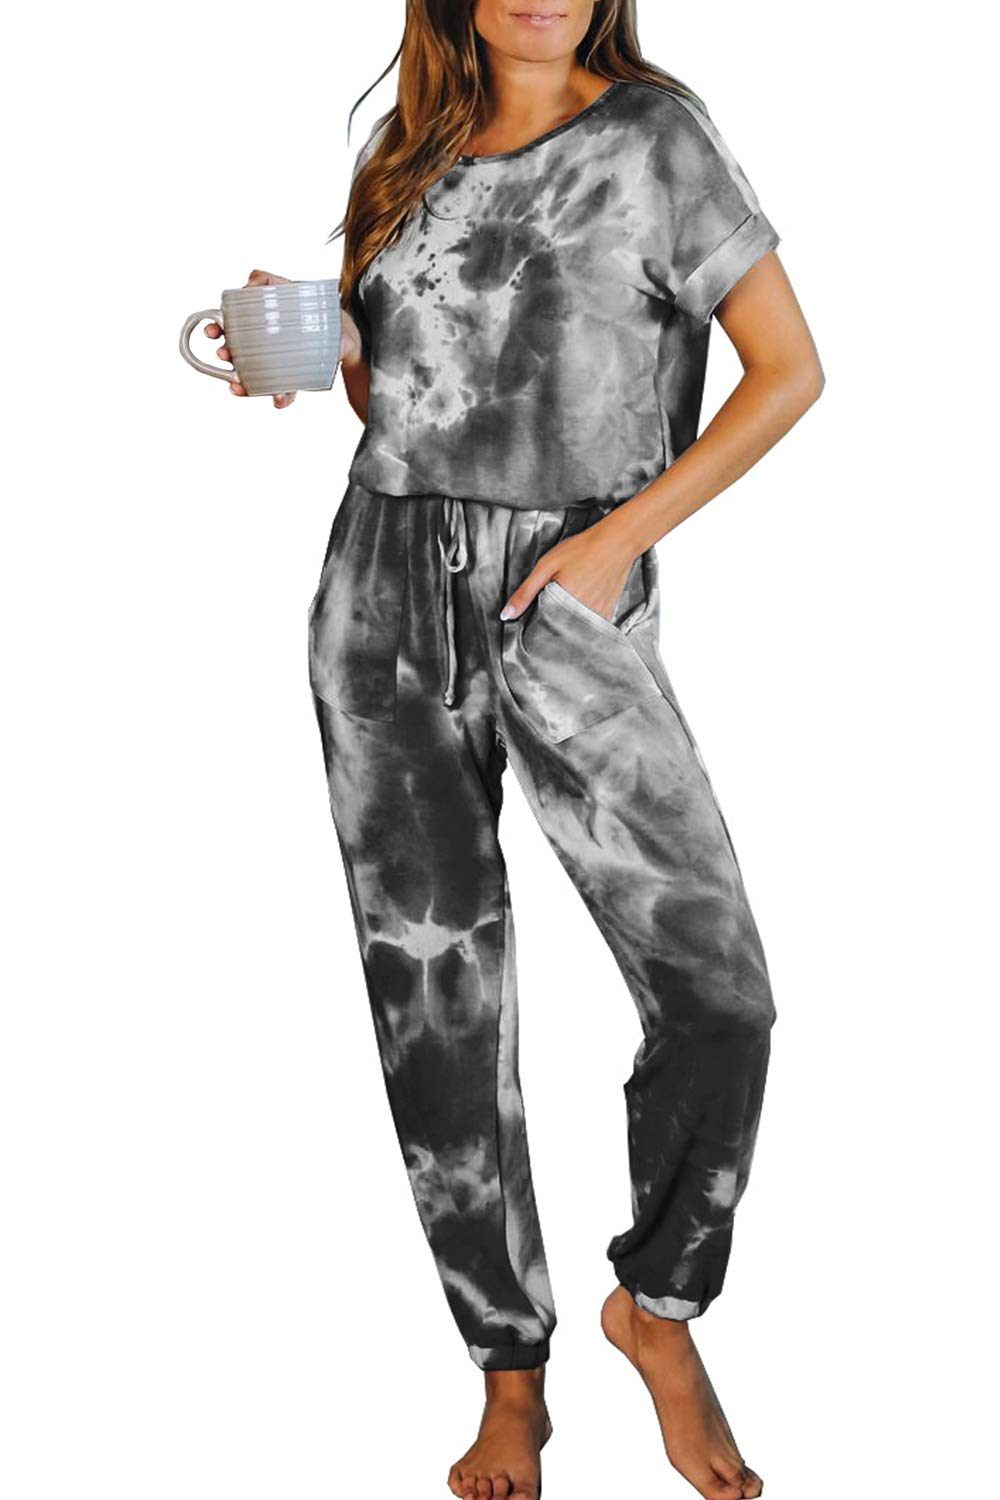 Fixmatti Women Short Sleeve Tie Dye Jumpsuit Long Pant Set Lounge Night Sleep Pjs